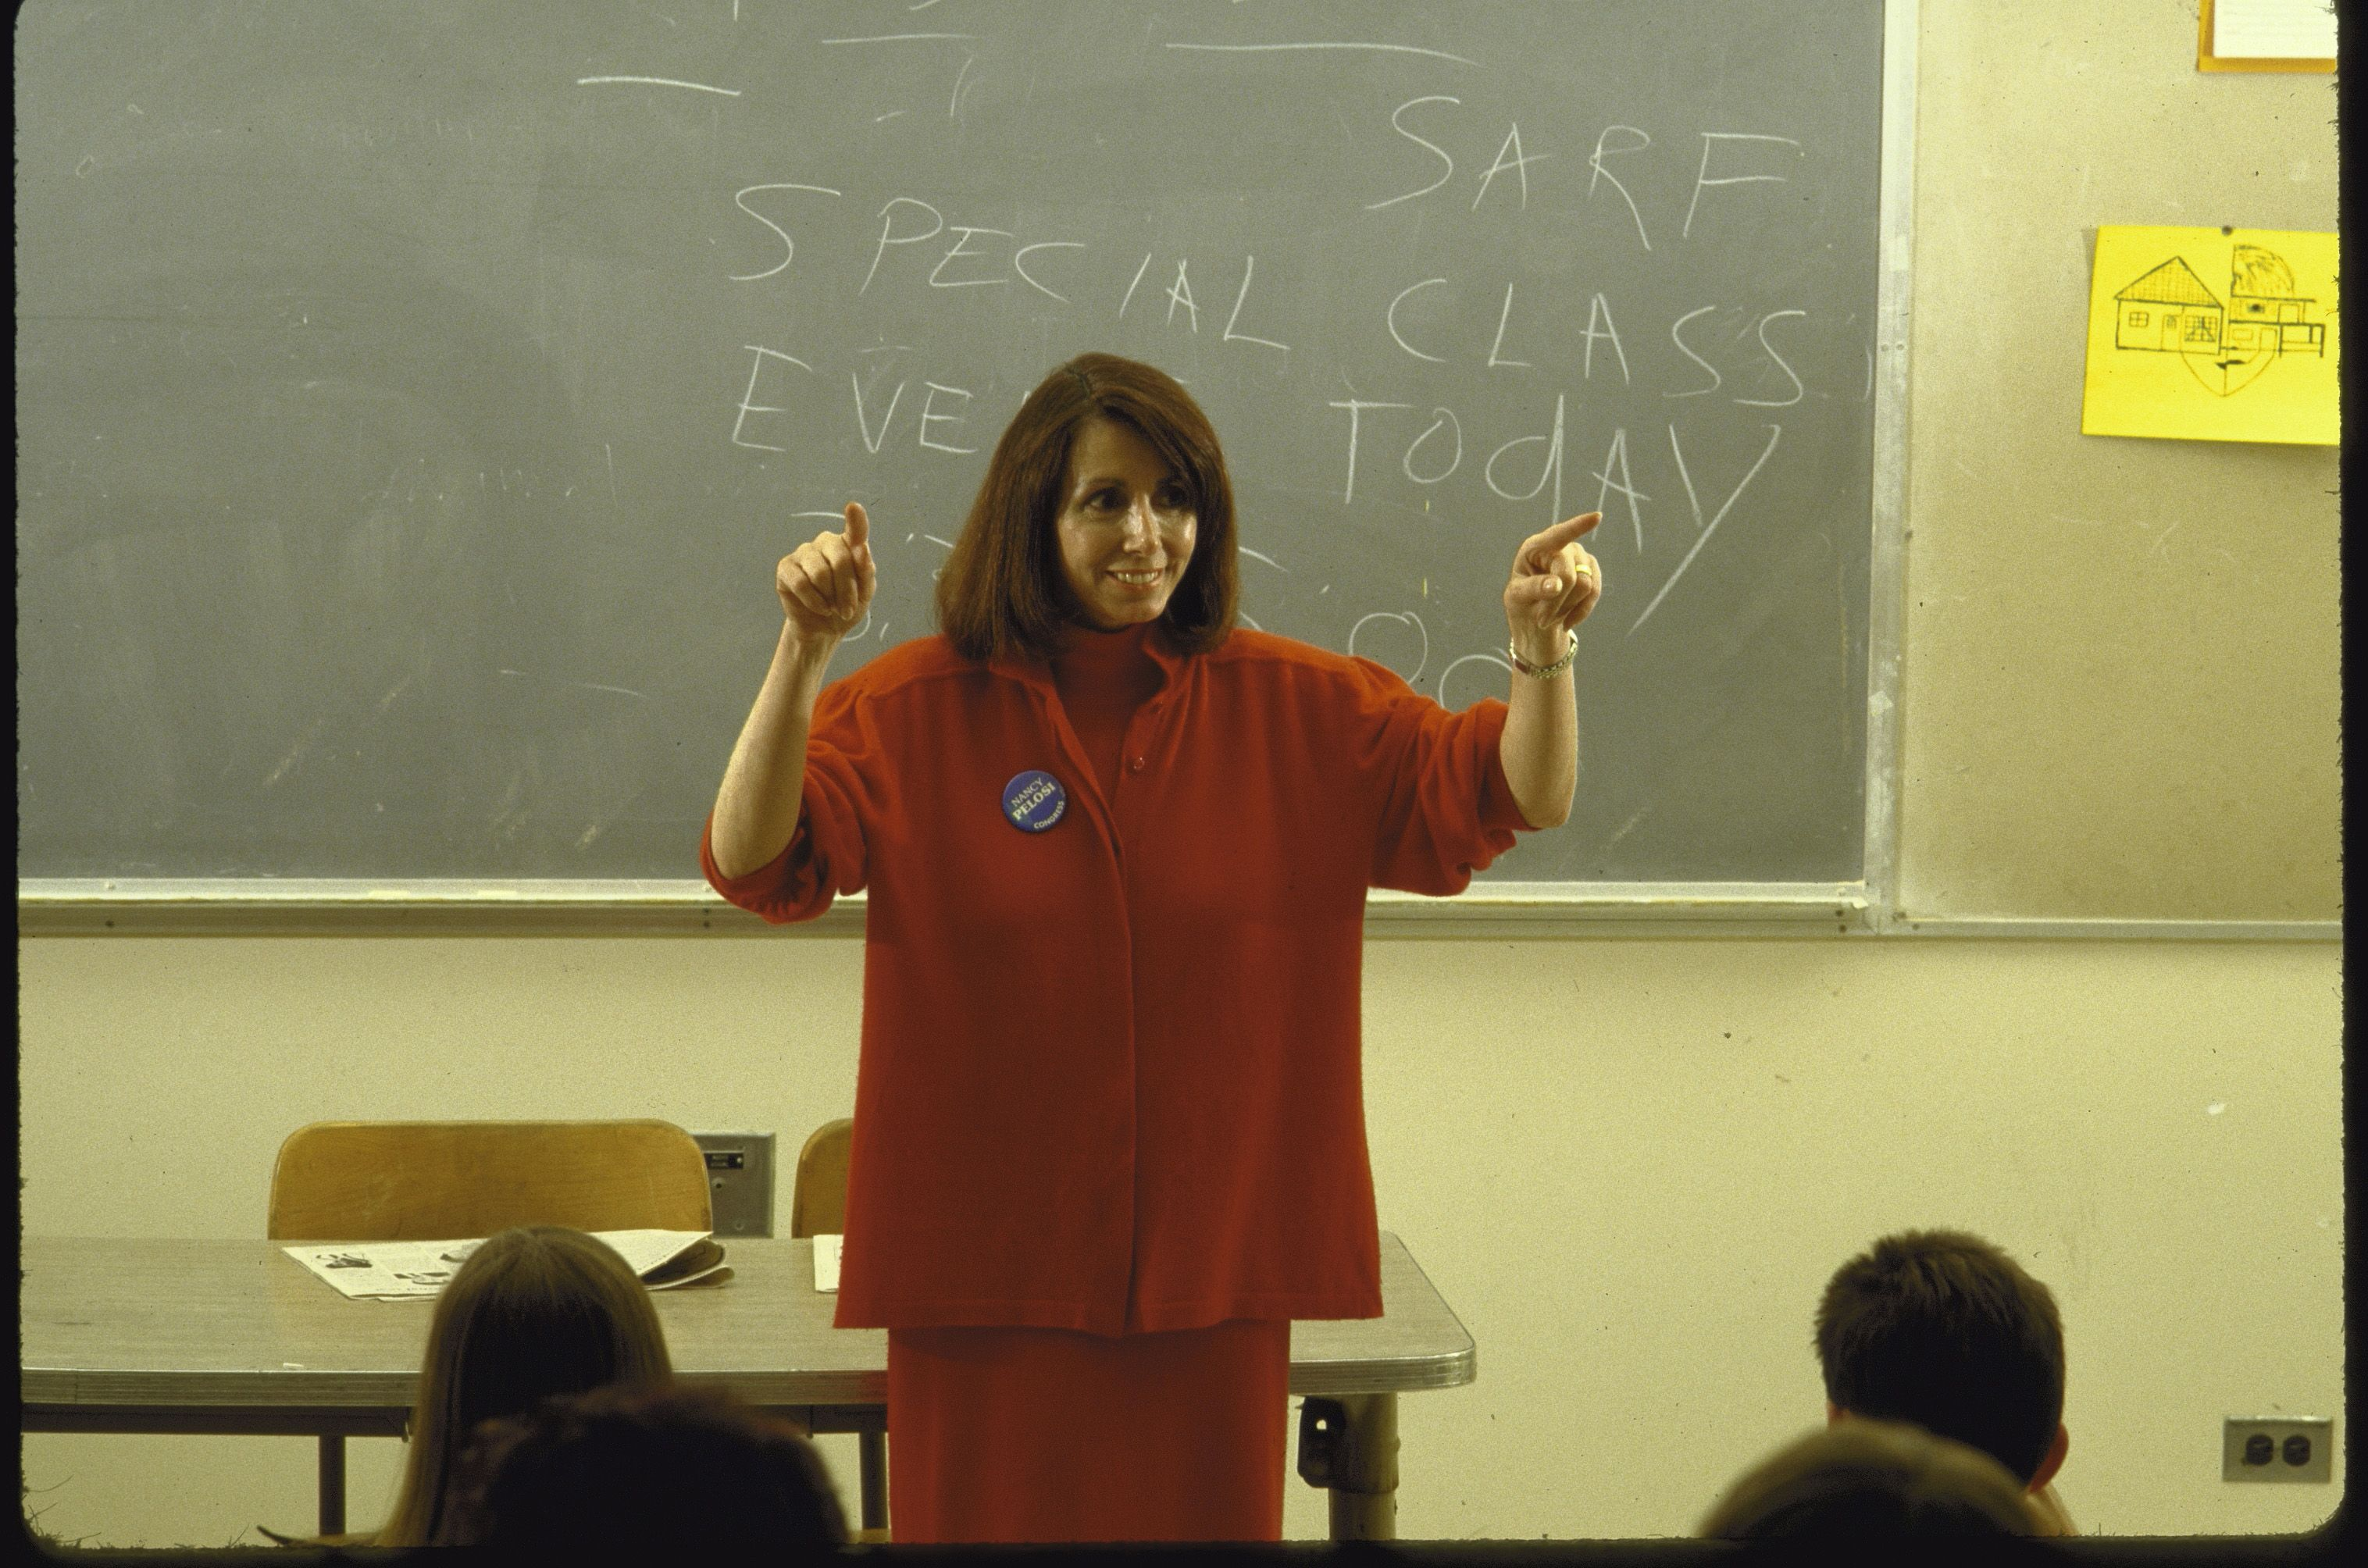 In 1987, Pelosi won a special election to replace Sala Burton in the House of Representatives, representing California's 5th congressional district. She's seen here speaking to students at San Francisco State University.